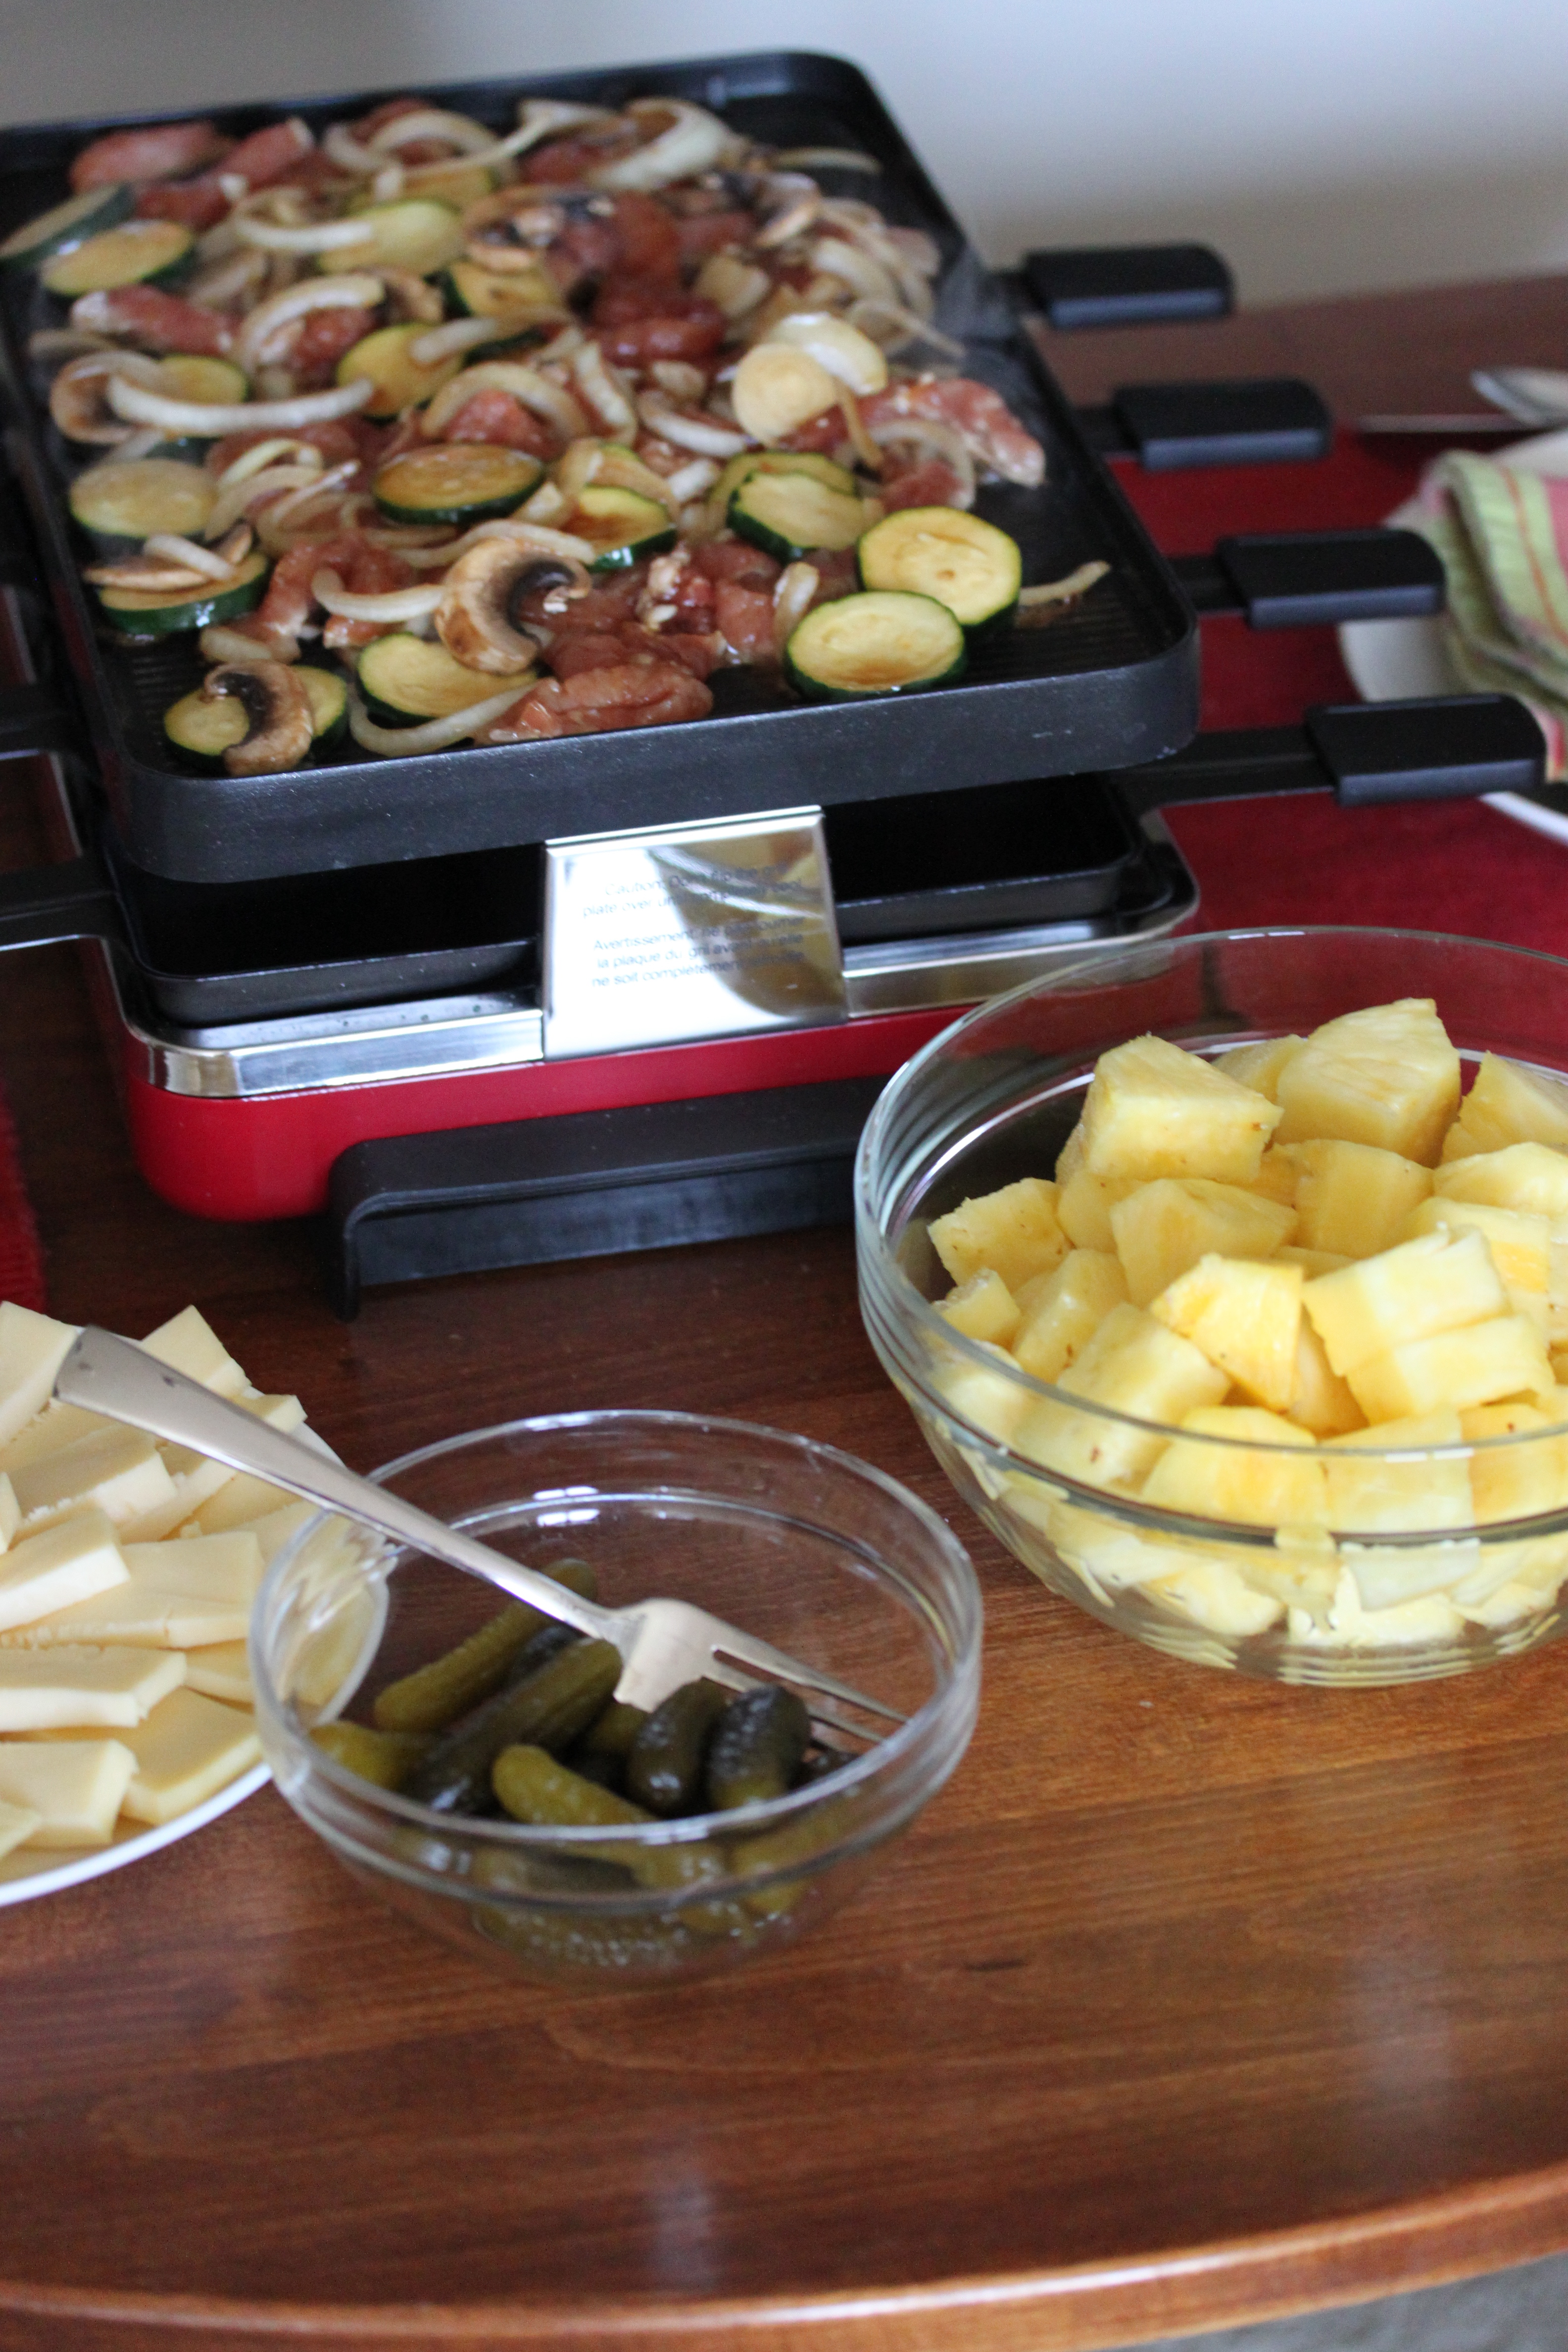 301 moved permanently - La table a raclette ...